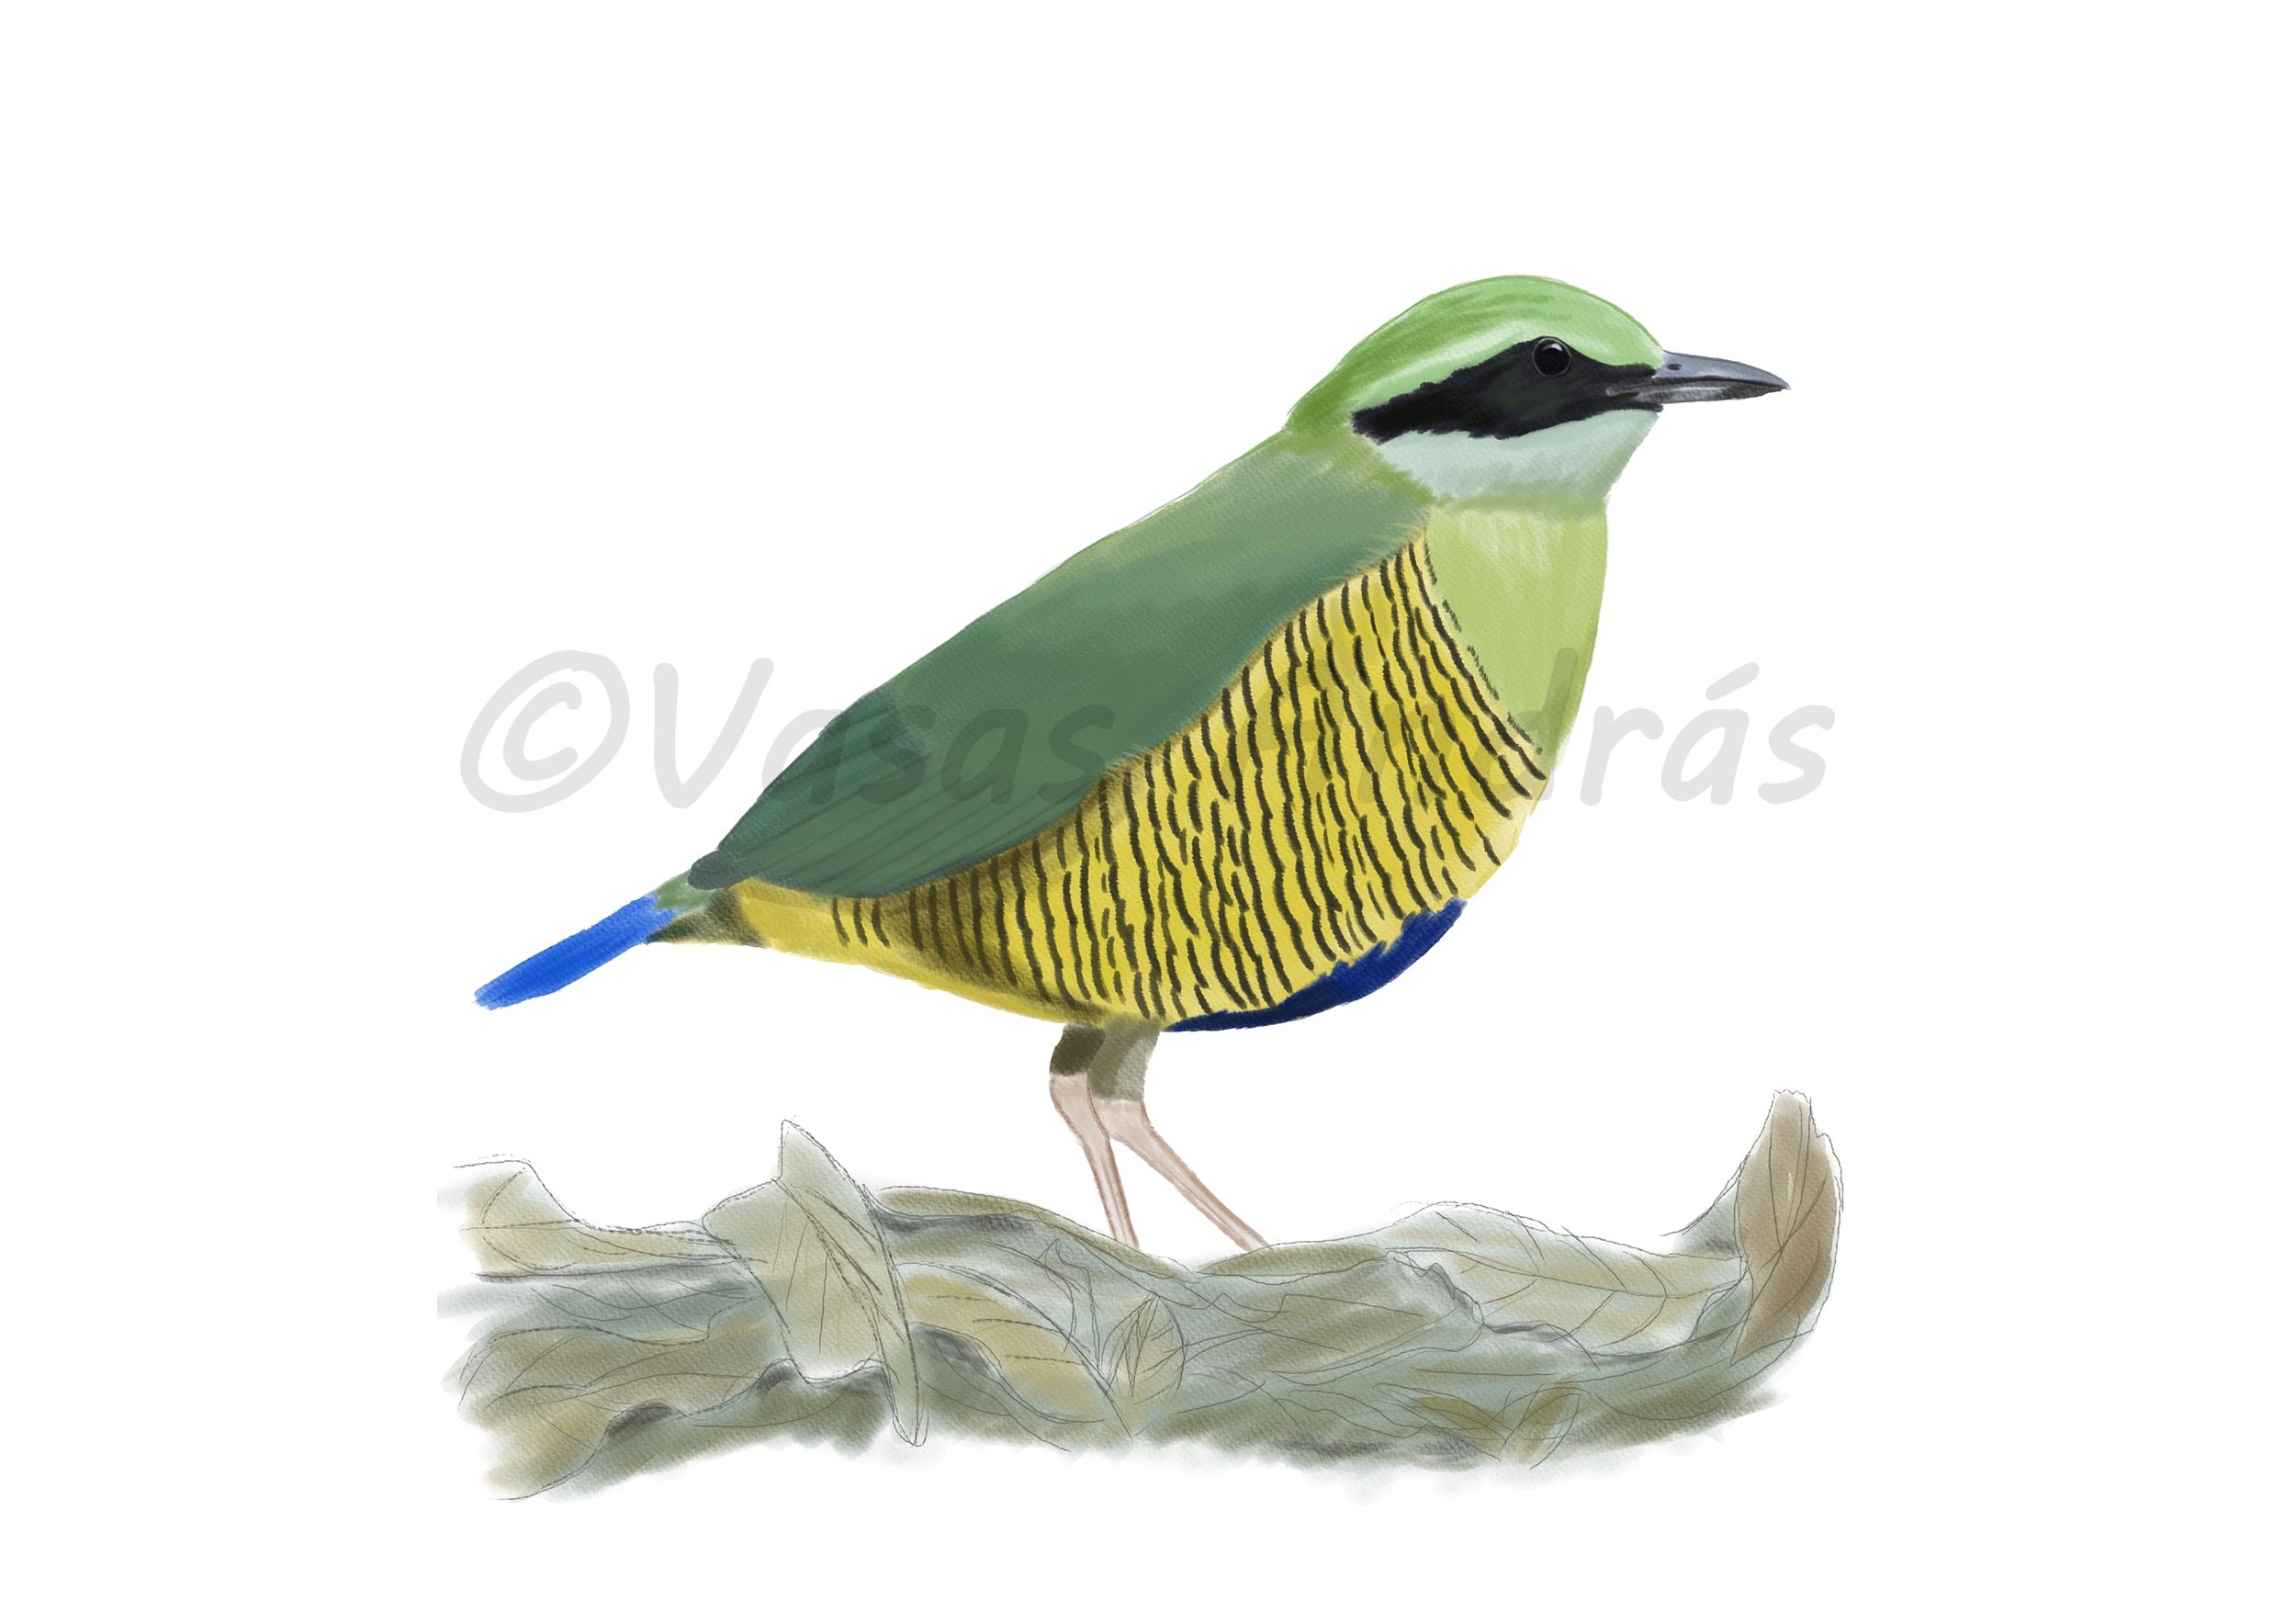 Bar-bellied Pitta, inspired by birding experiences in Cat Tien. Check out András's artist page  here .